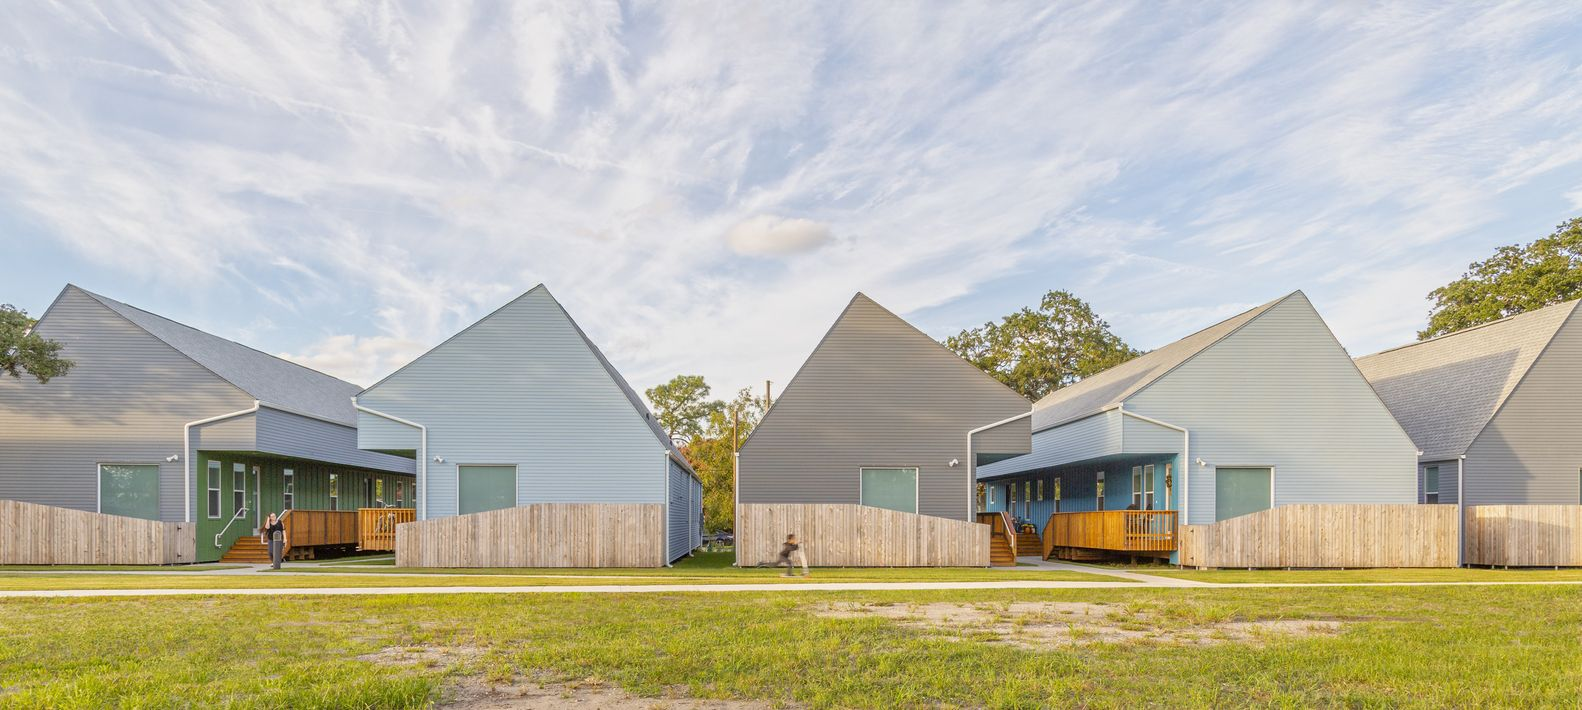 Gallery Of Bastion Community Housing Ojt 1 Community Housing Architecture Affordable Housing